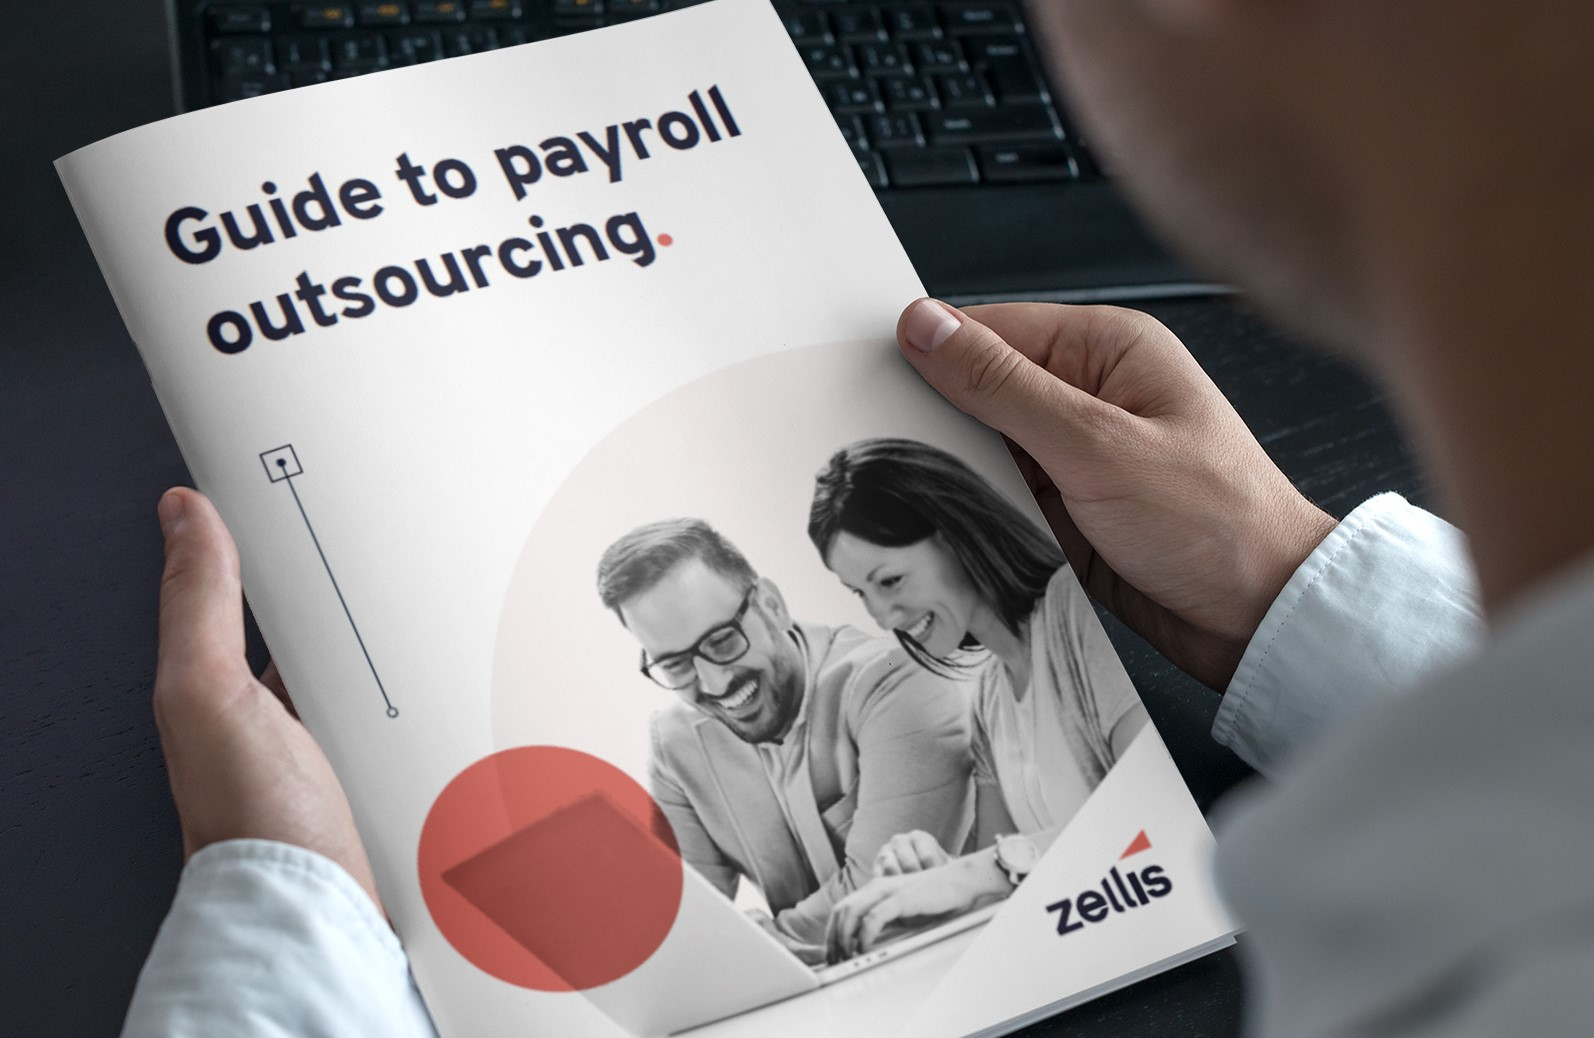 guide_to_outsourcing_payroll